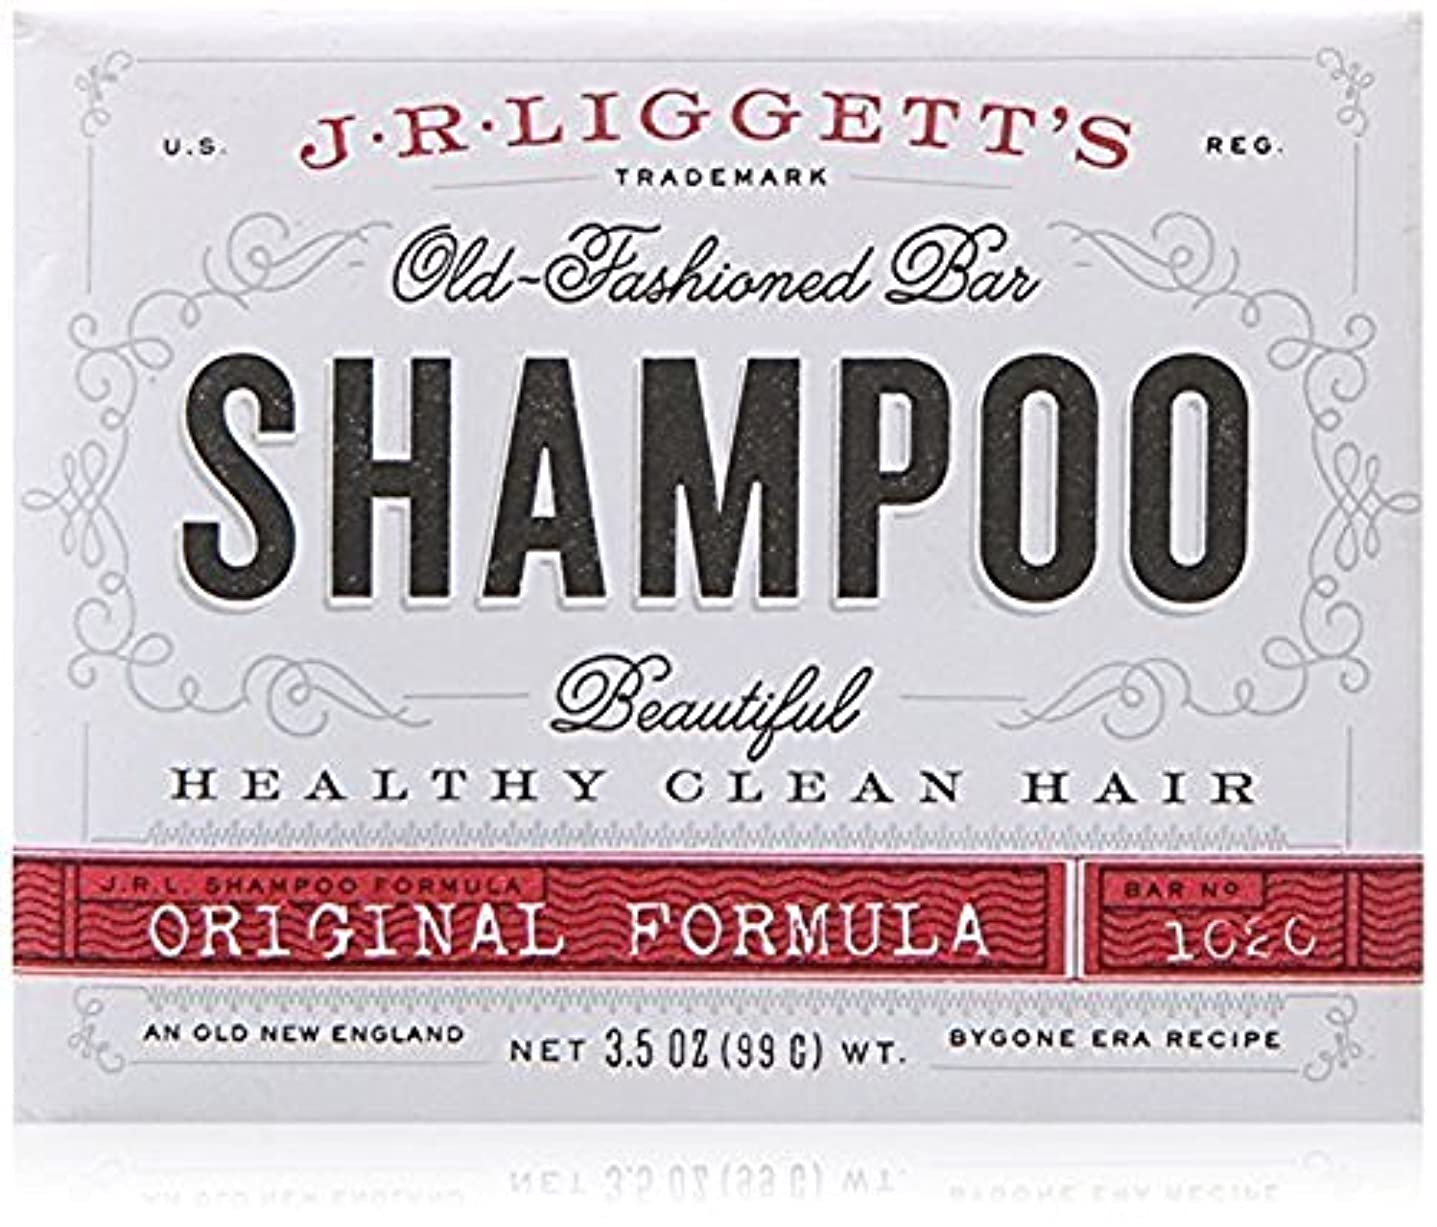 先住民ハリケーンアリx J.R.Liggett's Old-Fashioned Bar Shampoo The Original Formula - 3.5 oz by J.R. Liggett